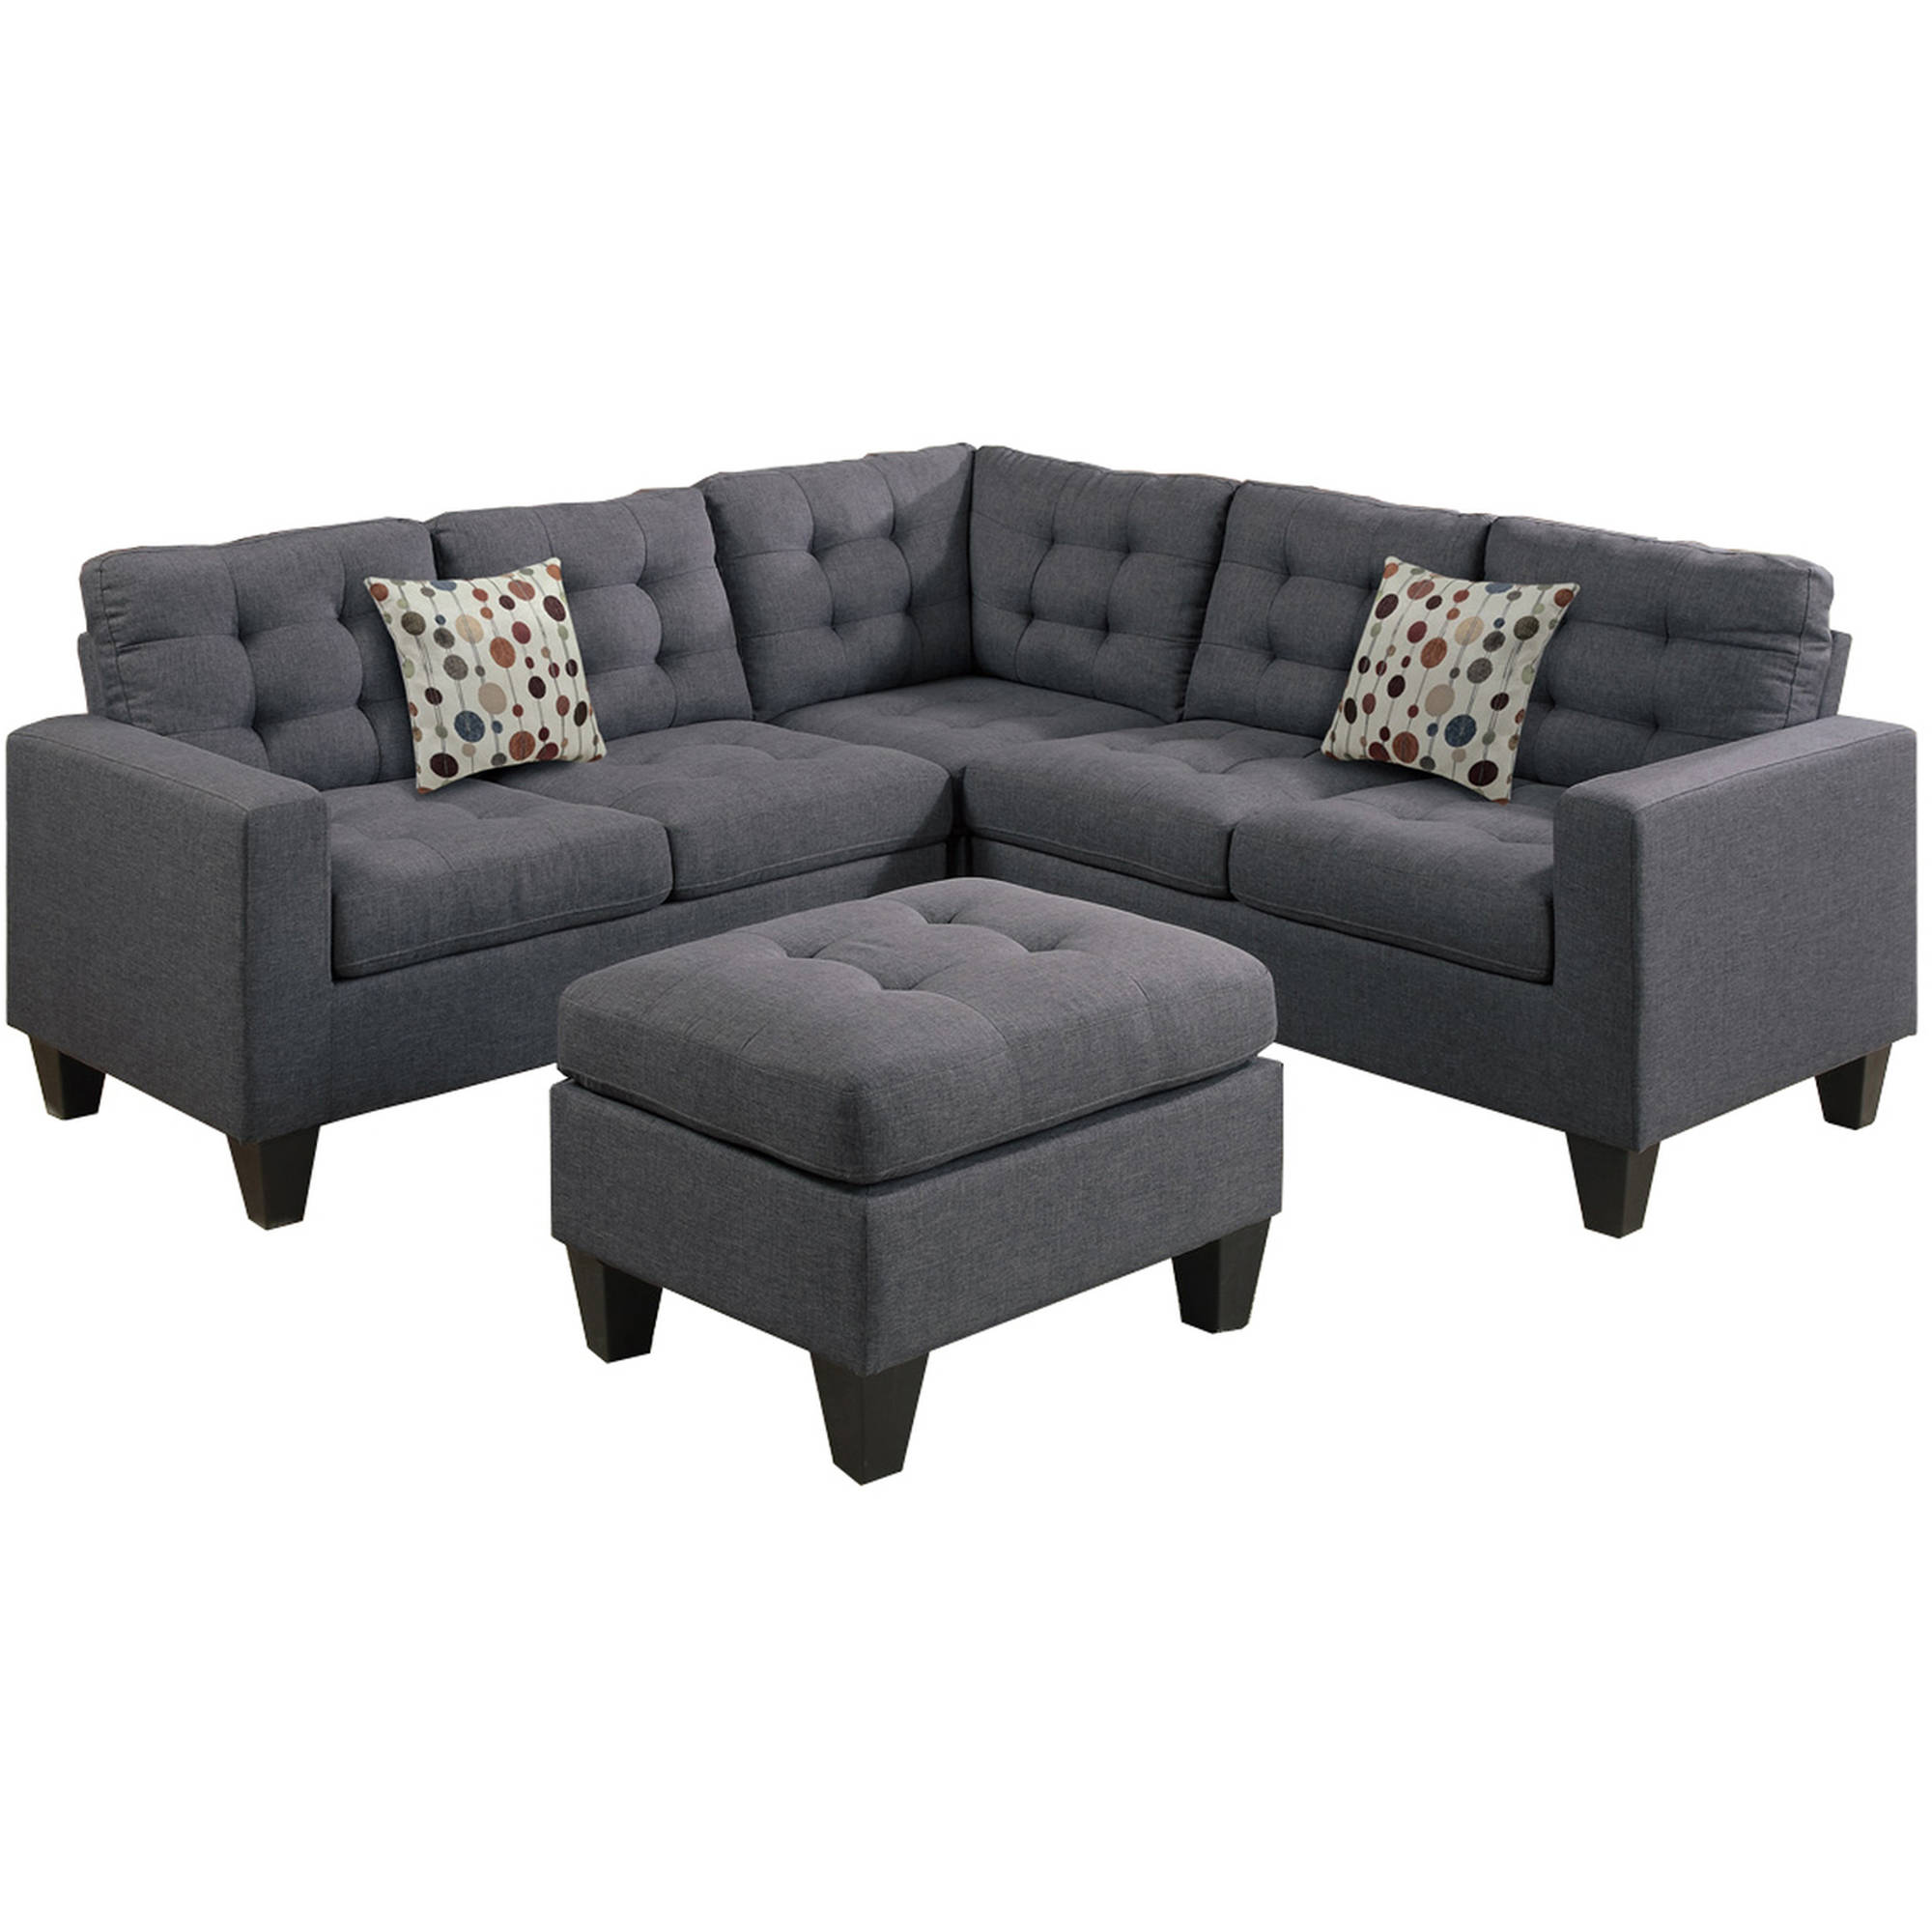 Bobkona Norton Polyfabric 4-Piece Sectional with Ottoman Set Multiple Colors  sc 1 st  Walmart : sectional and ottoman - Sectionals, Sofas & Couches